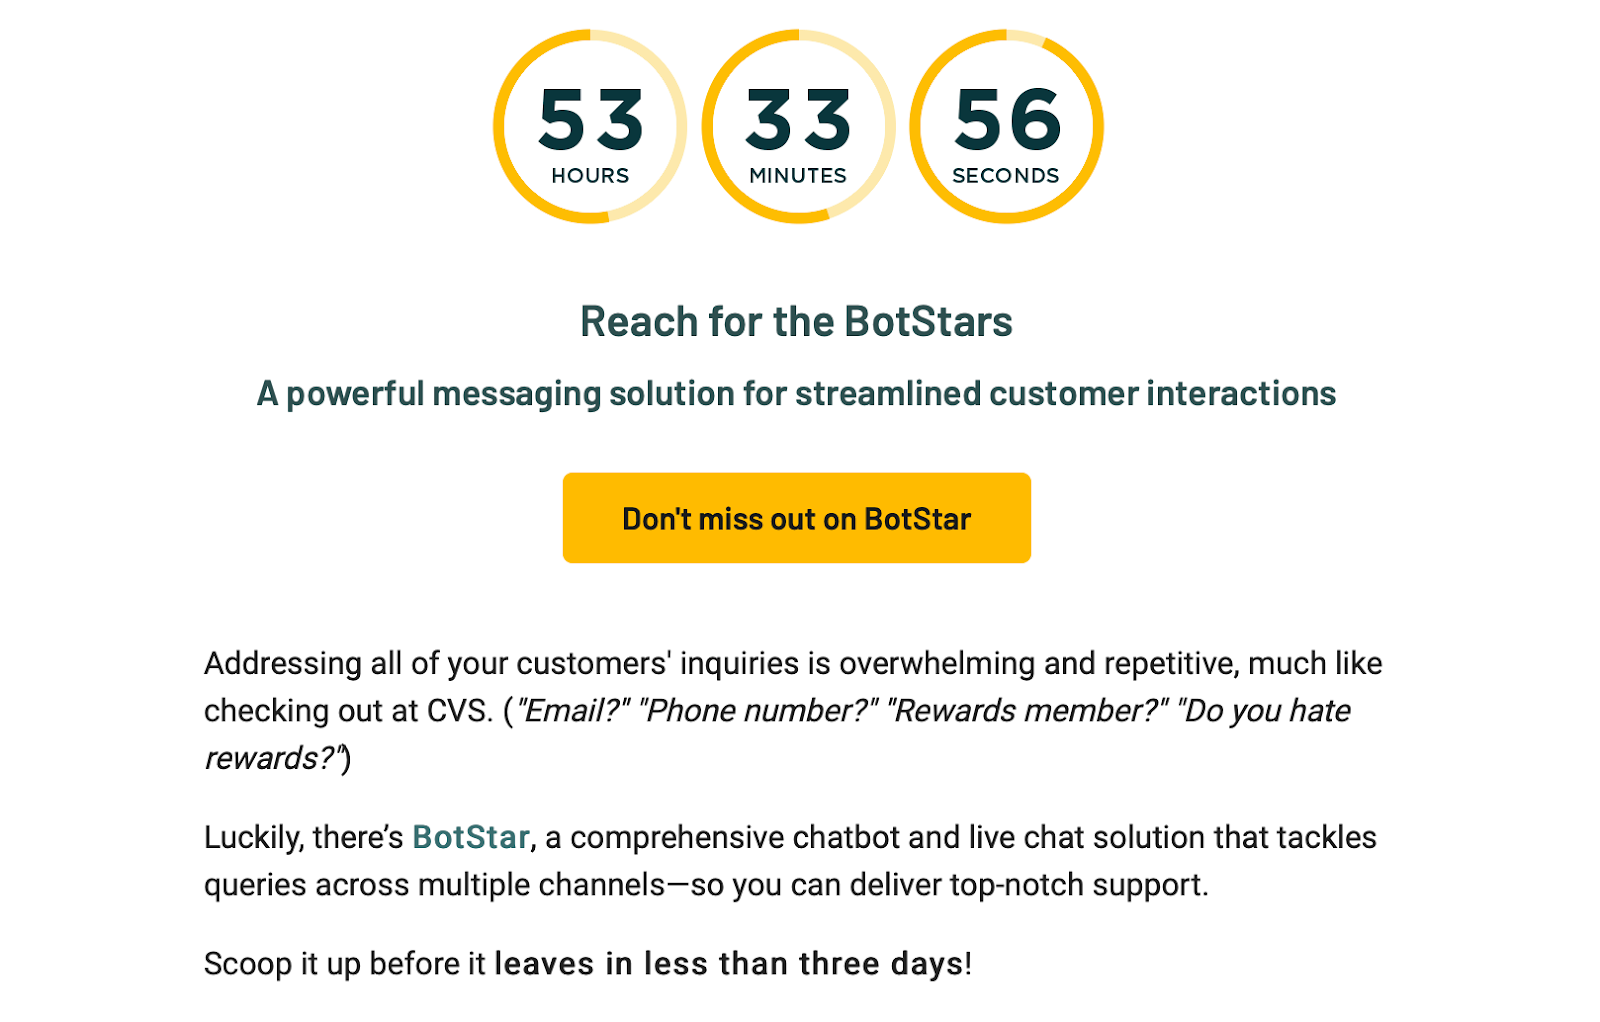 An example of humour used in email marketing from SaaS brand AppSumo